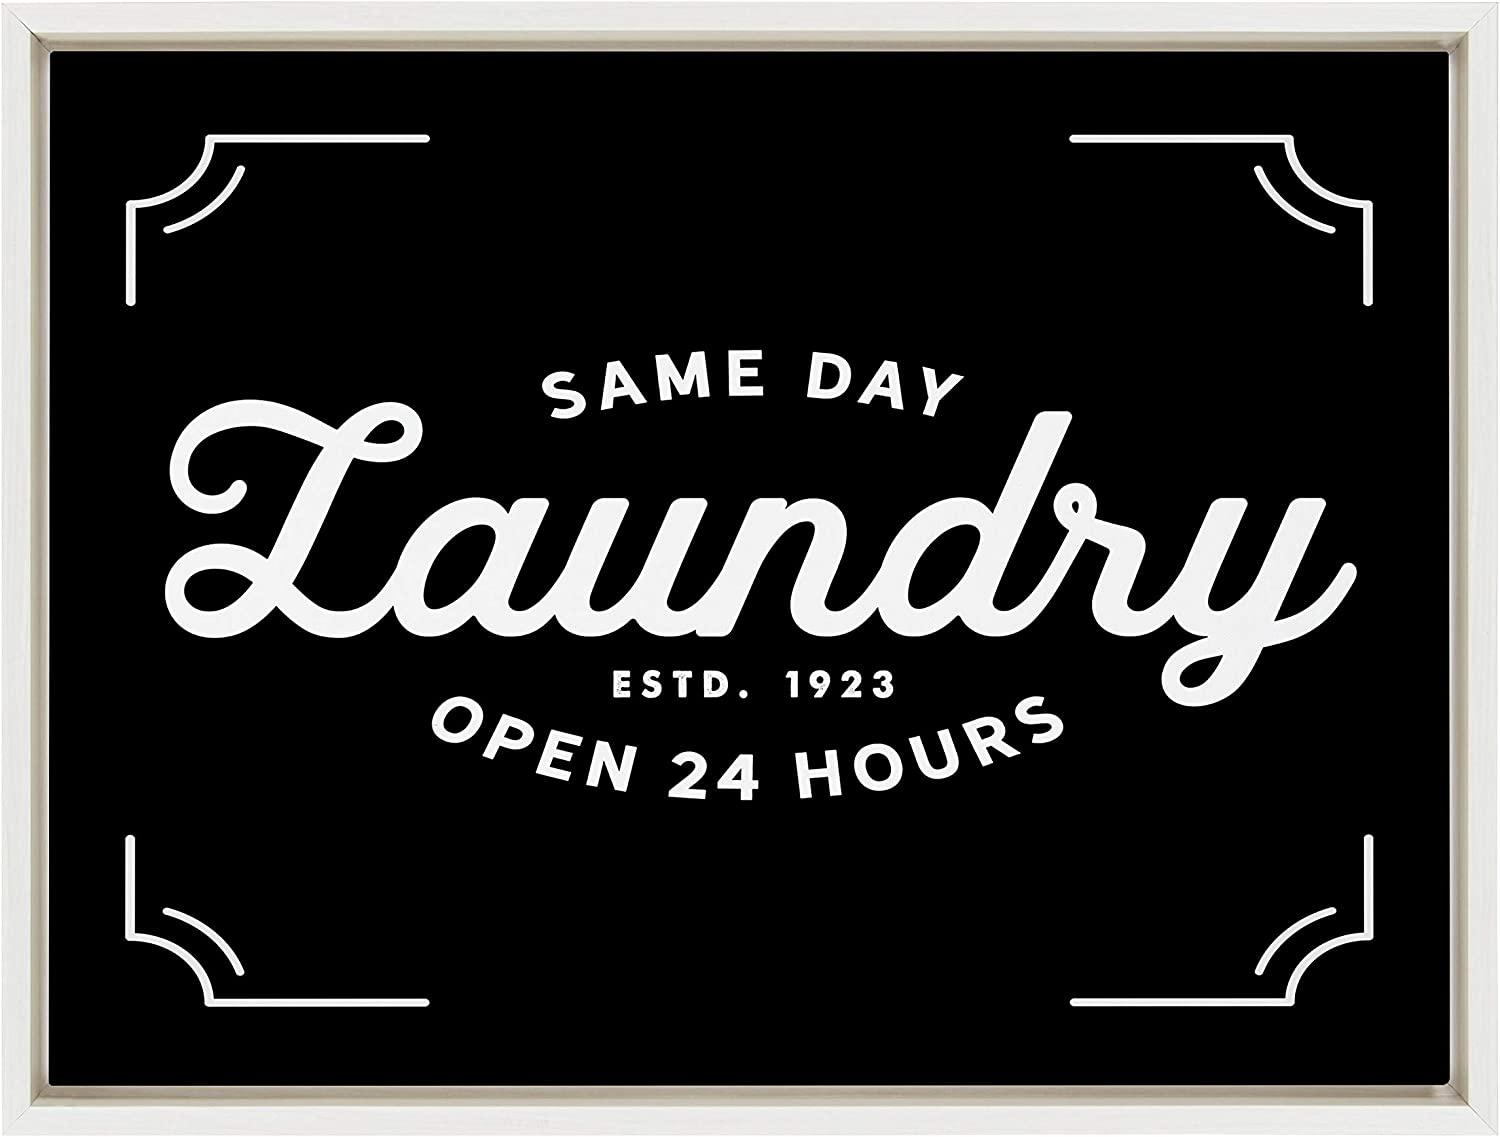 Kate and Laurel Sylvie Same Day Laundry Co Black Framed Canvas Wall Art by Maggie Price of Hunt and Gather Goods, 18x24 White, Vintage Art for Wall